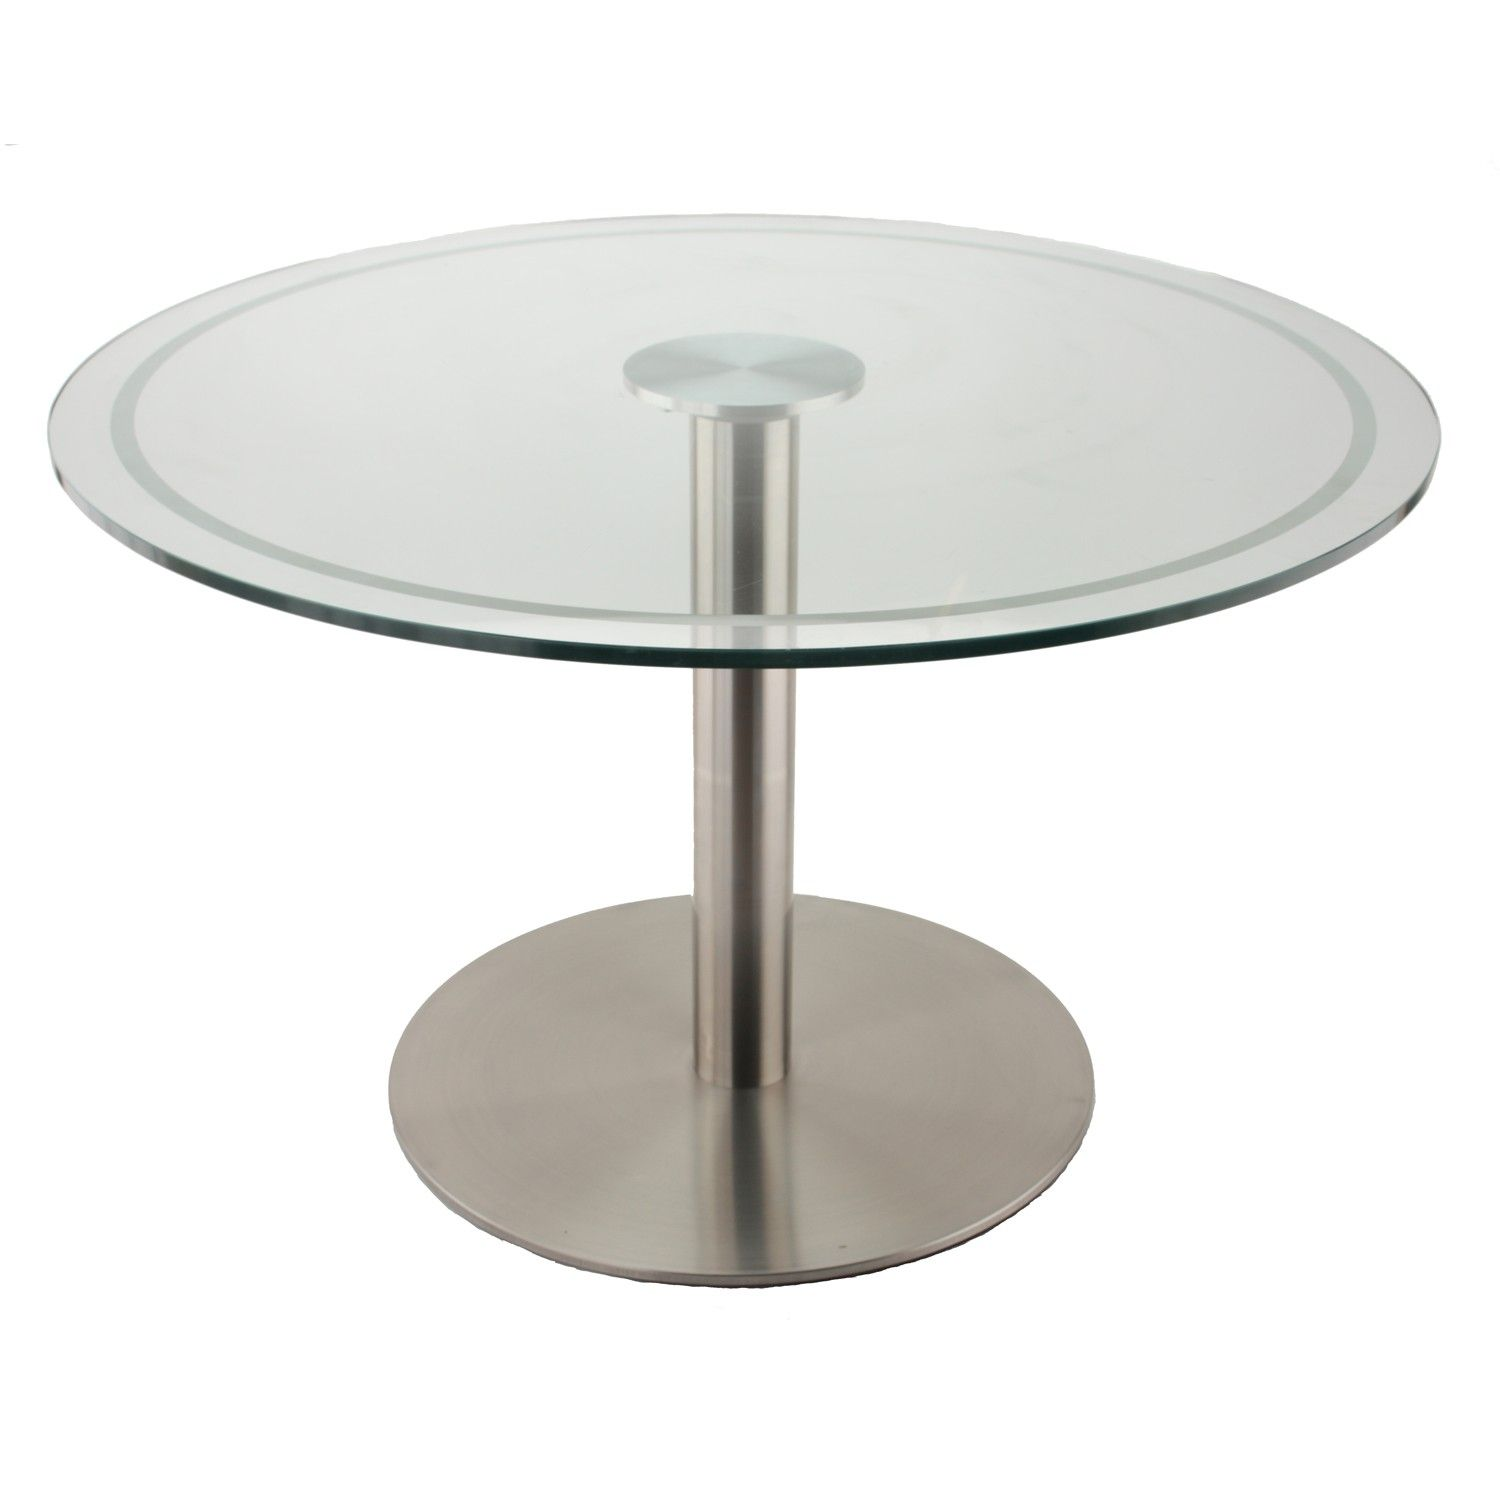 Exceptionnel The RFL750 Stainless Steel Table Base With Glass Table Top, Using Our Glass  Top Adapter